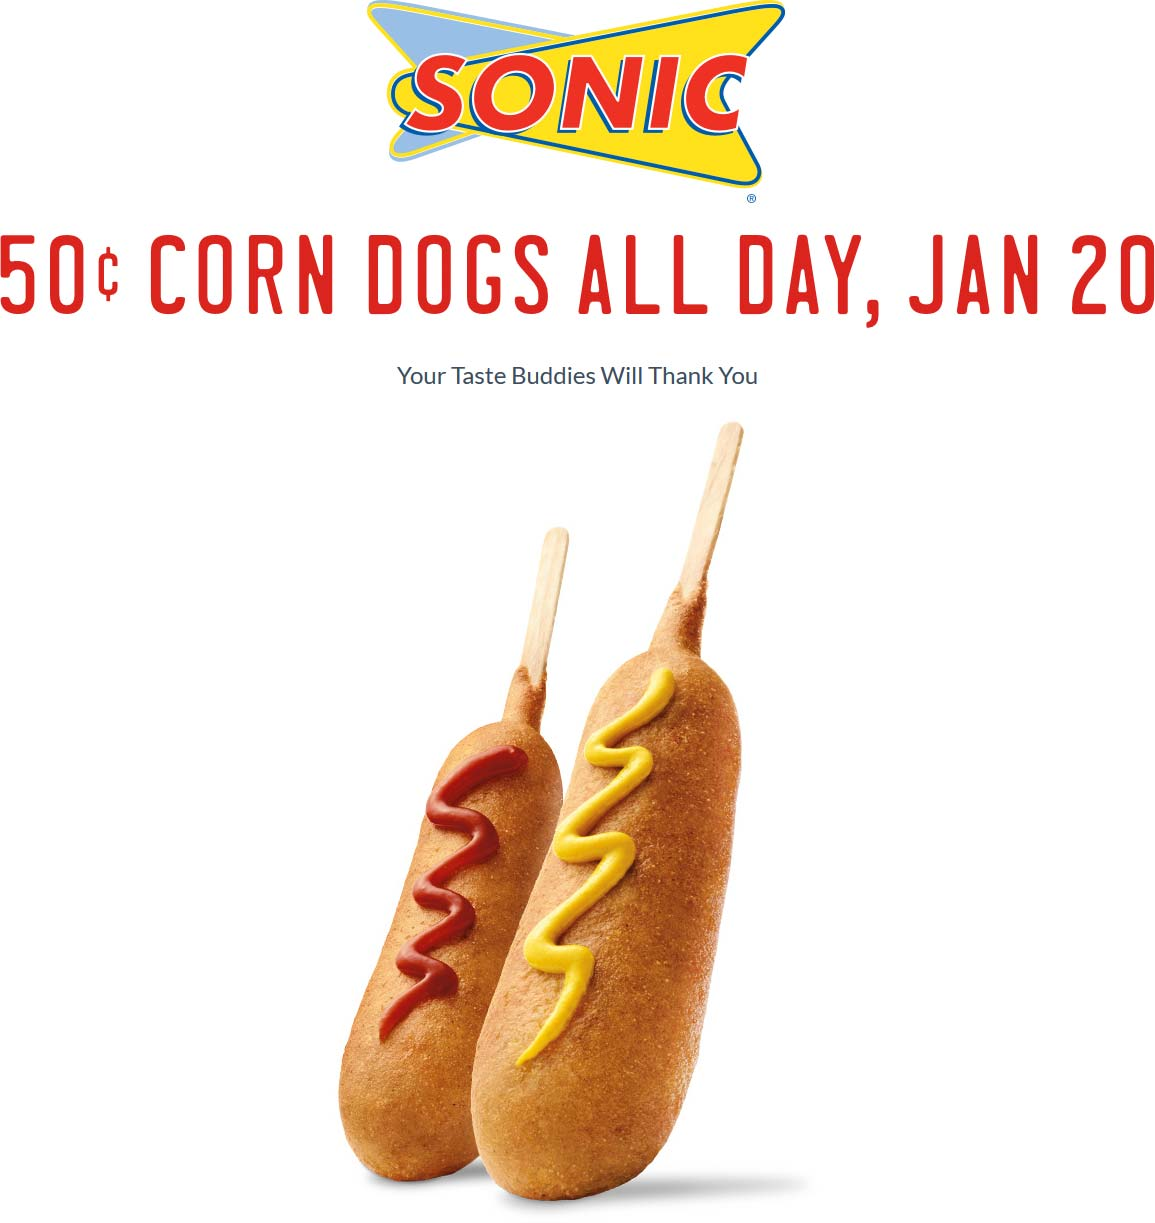 Sonic Drive-In Coupon March 2018 .50 cent corn dogs Wednesday at Sonic Drive-In